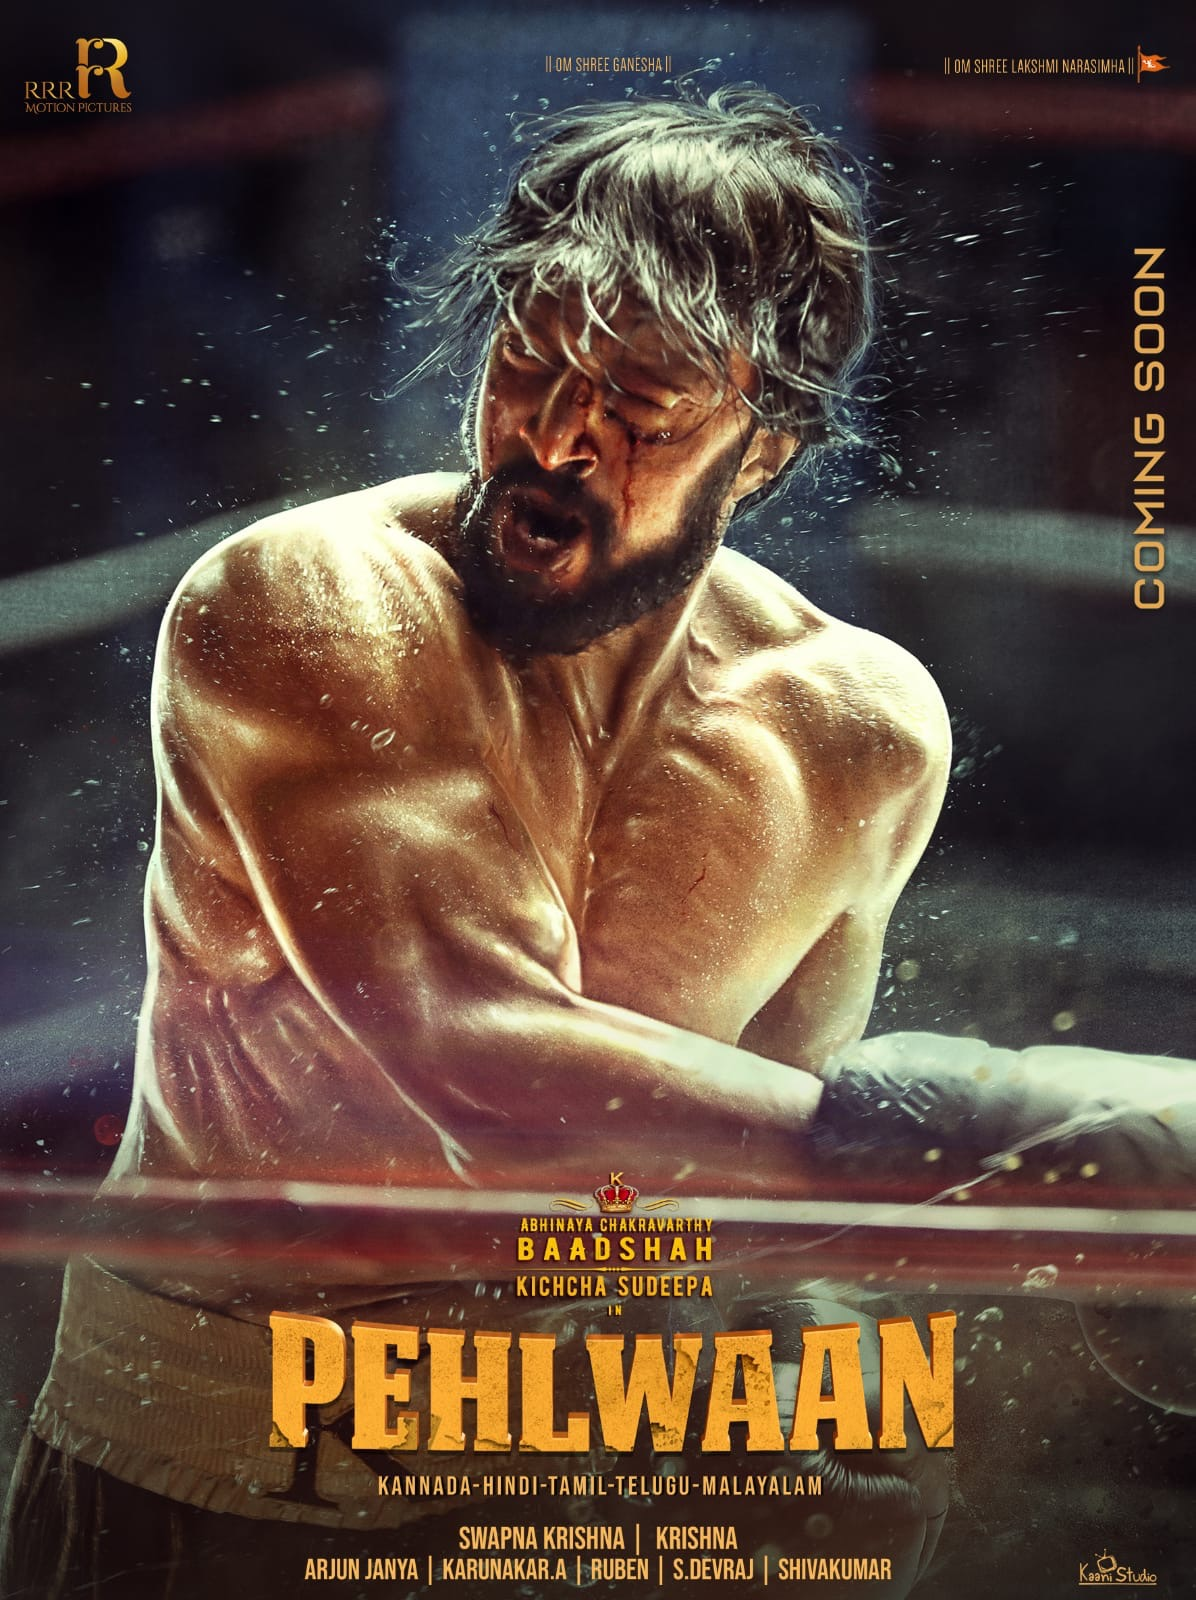 Baadshah Pehlwaan (2019) Hindi Dubbed Movie HDRip 720p AAC